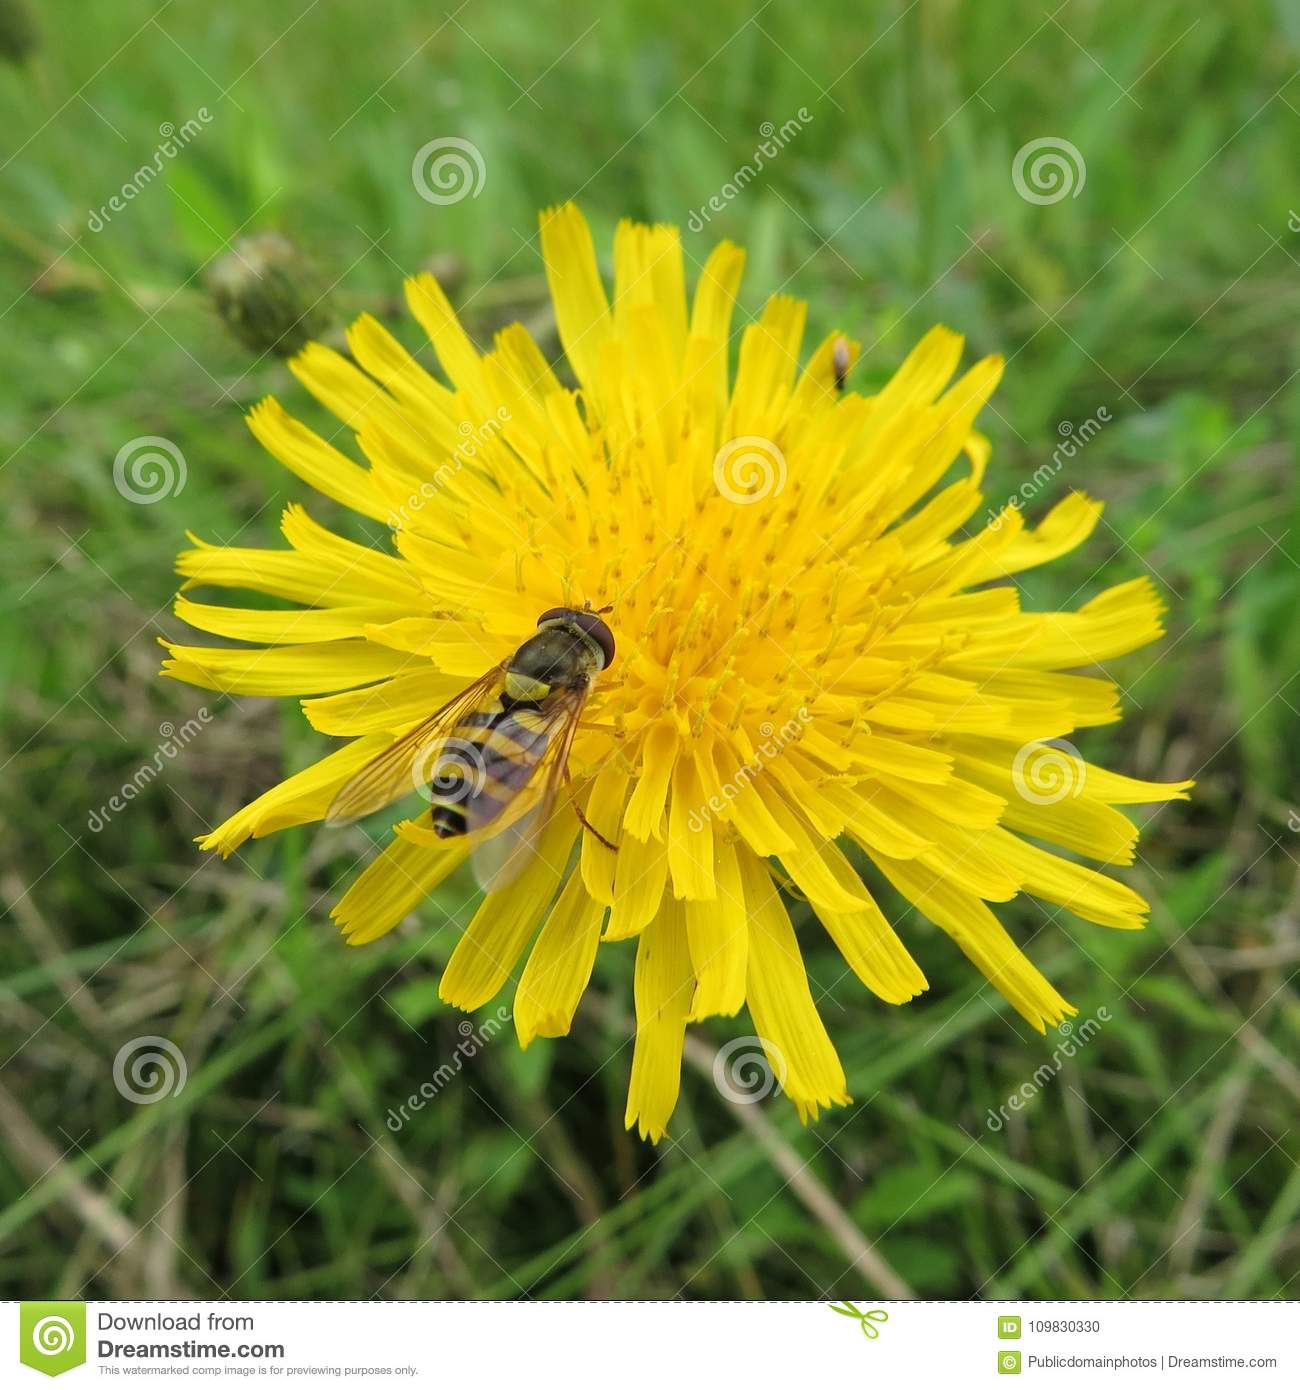 Free Public Domain Cc0 Image Flower Yellow Sow Thistles Flatweed